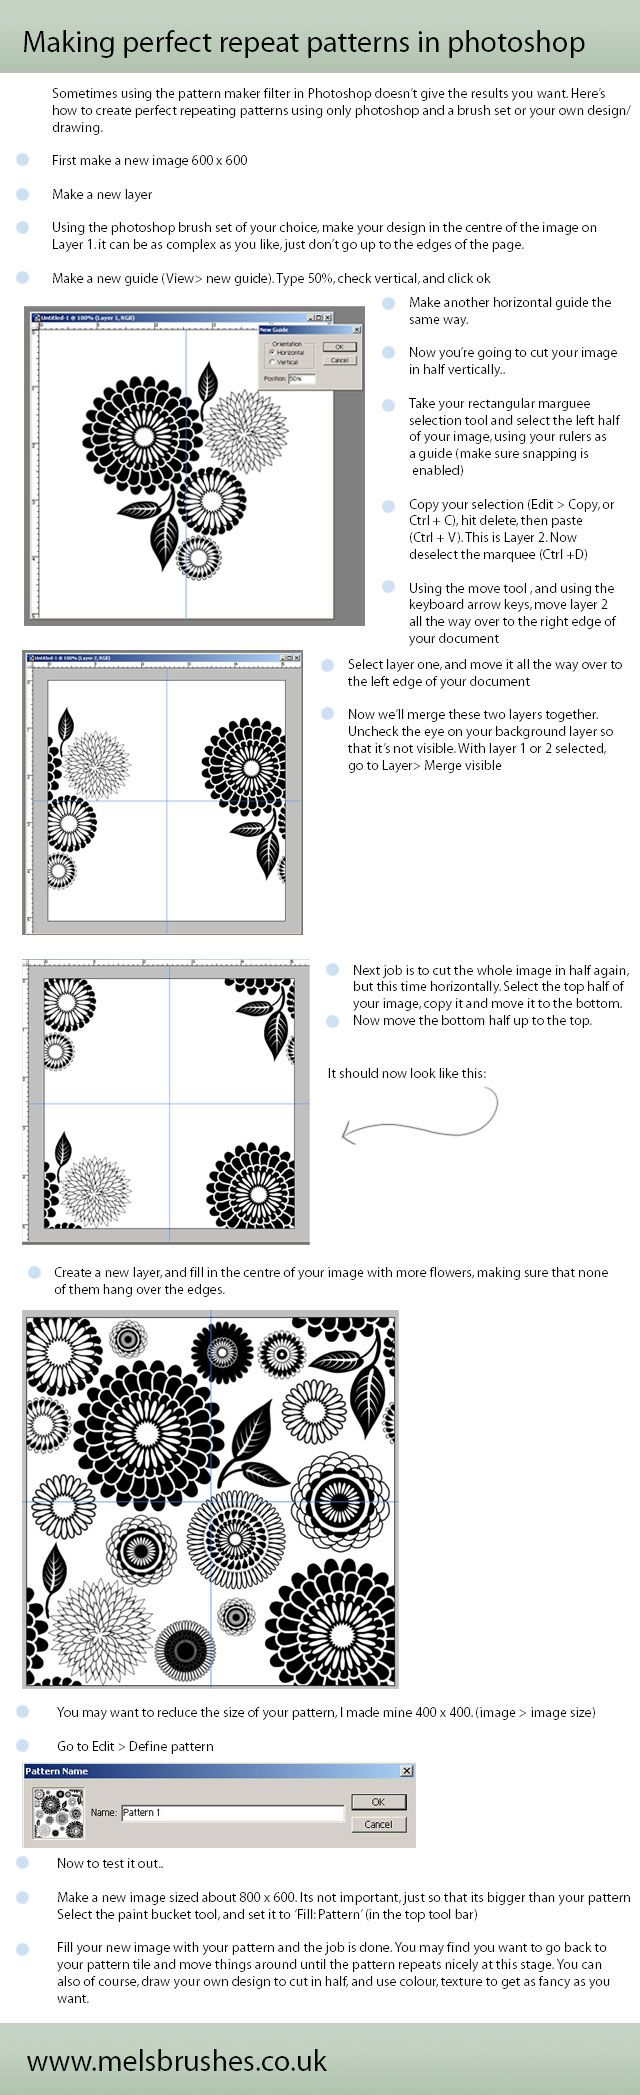 Making your own repeating patterns in Photoshop.